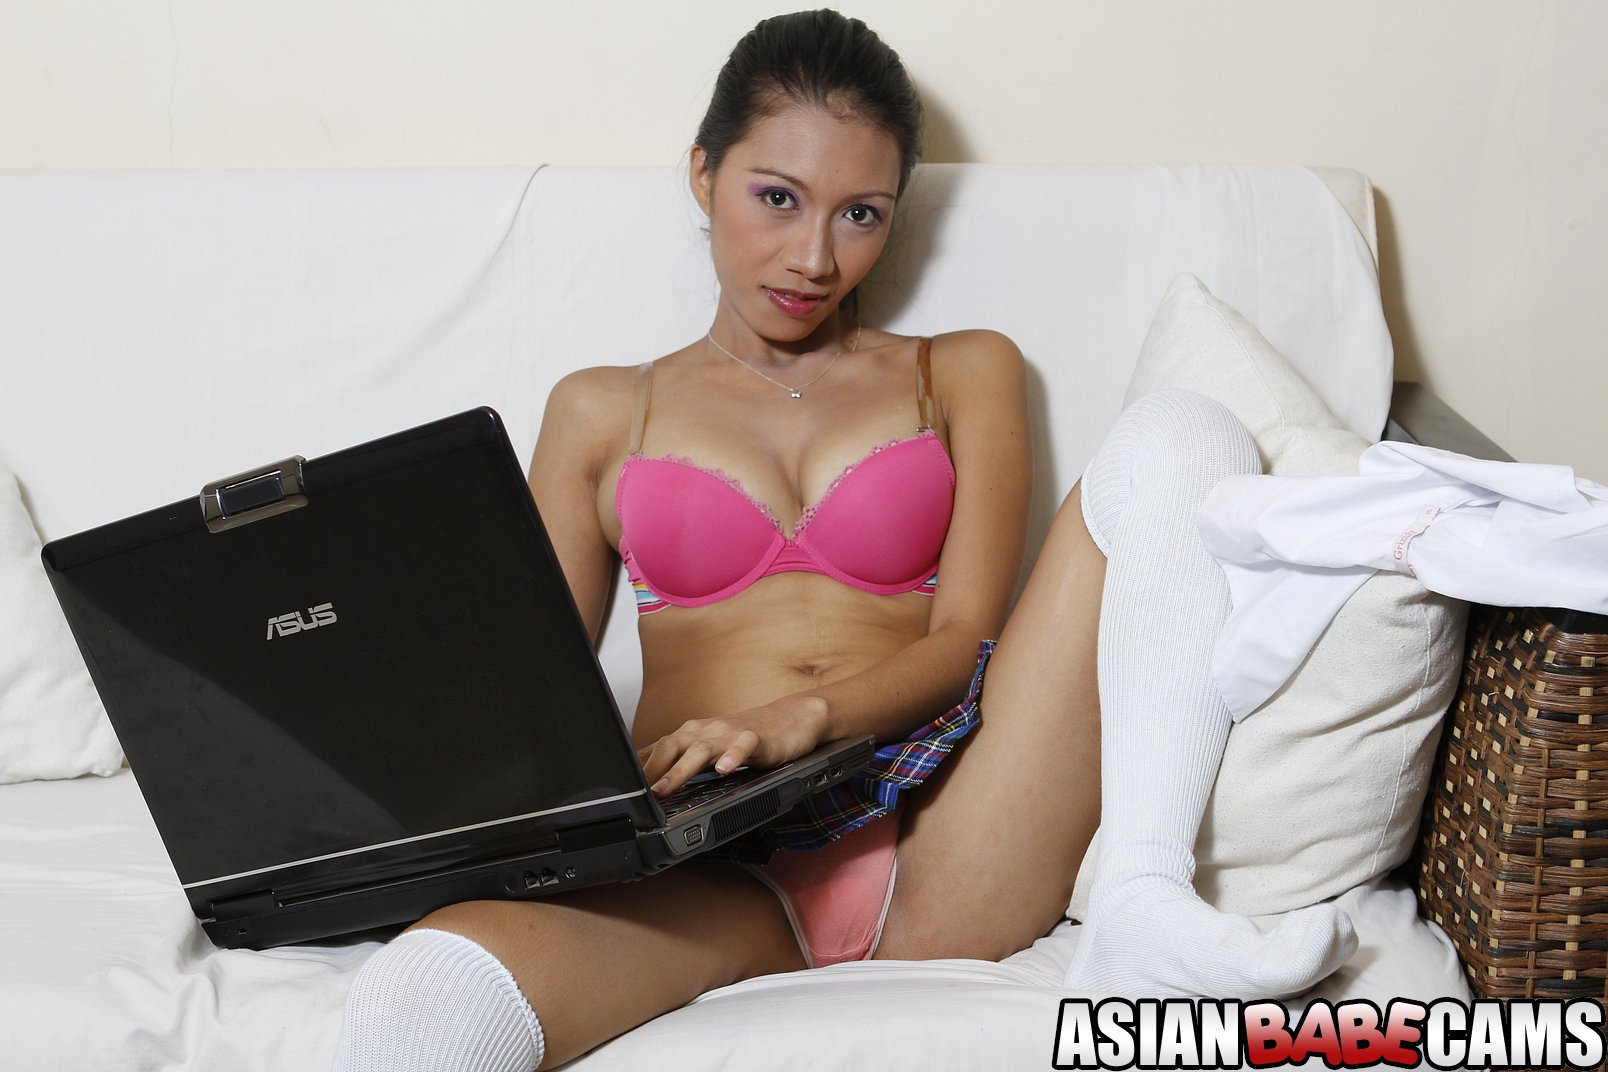 AsianBabeCams Leah Sexy Leah getting nude for you Live